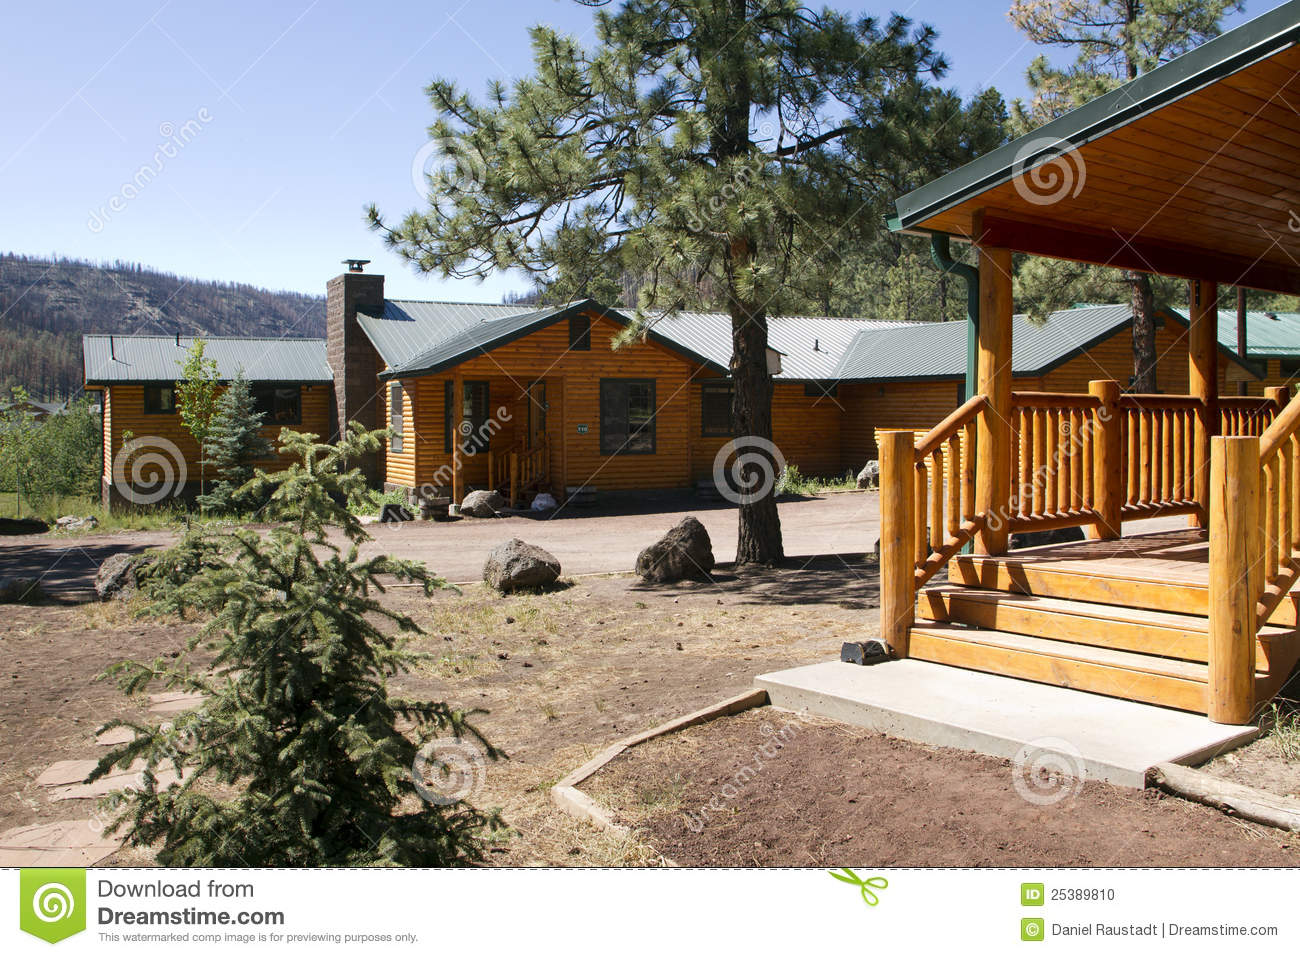 Summer vacation cabin in the mountain woods stock photo for Vacation log homes